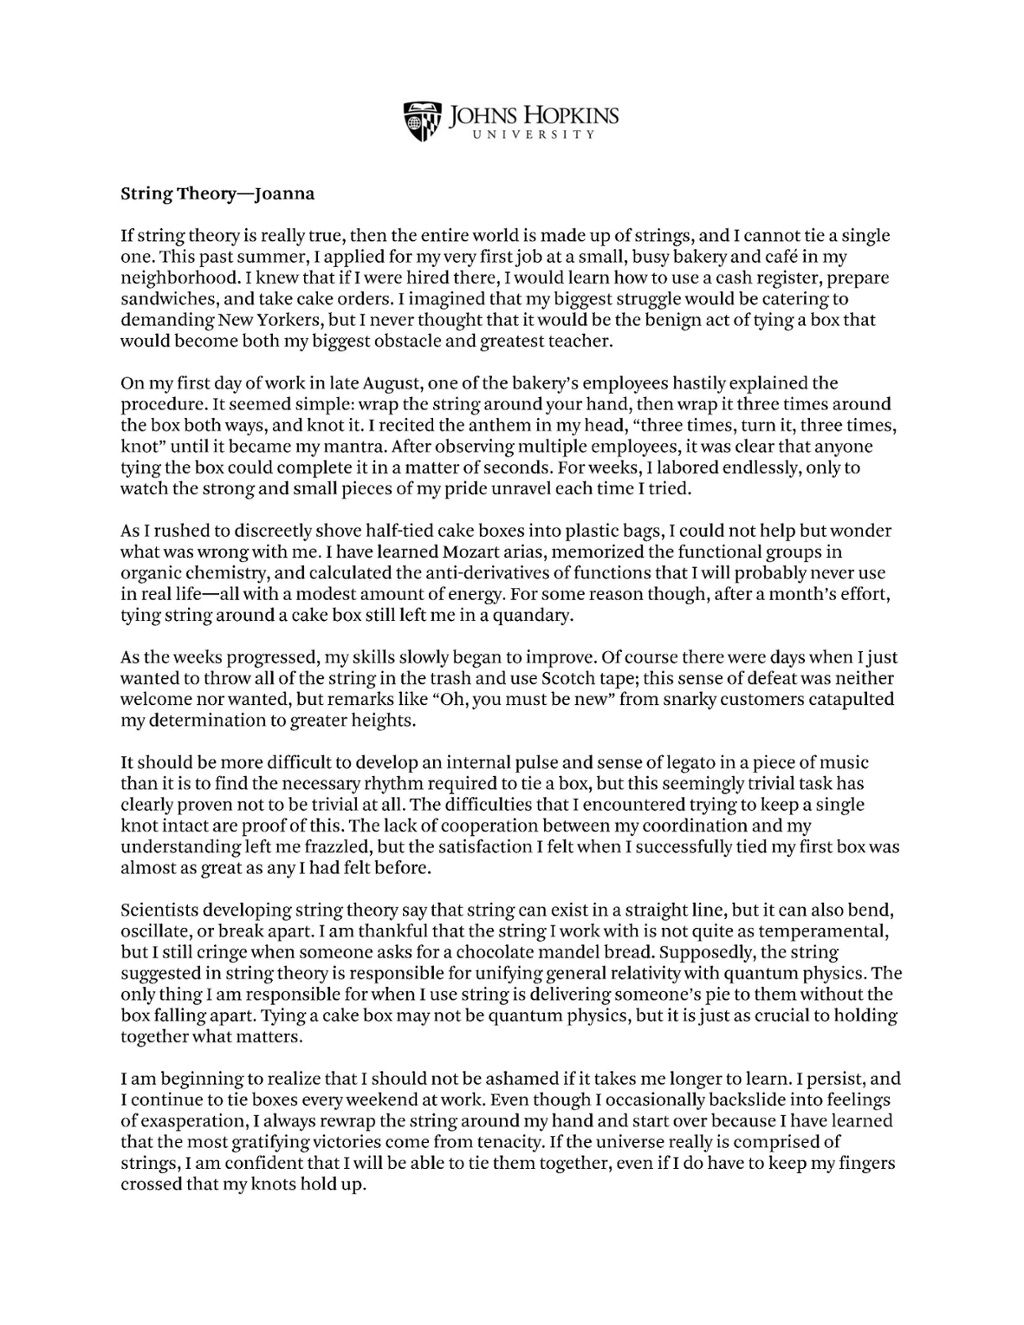 examples of great college essays